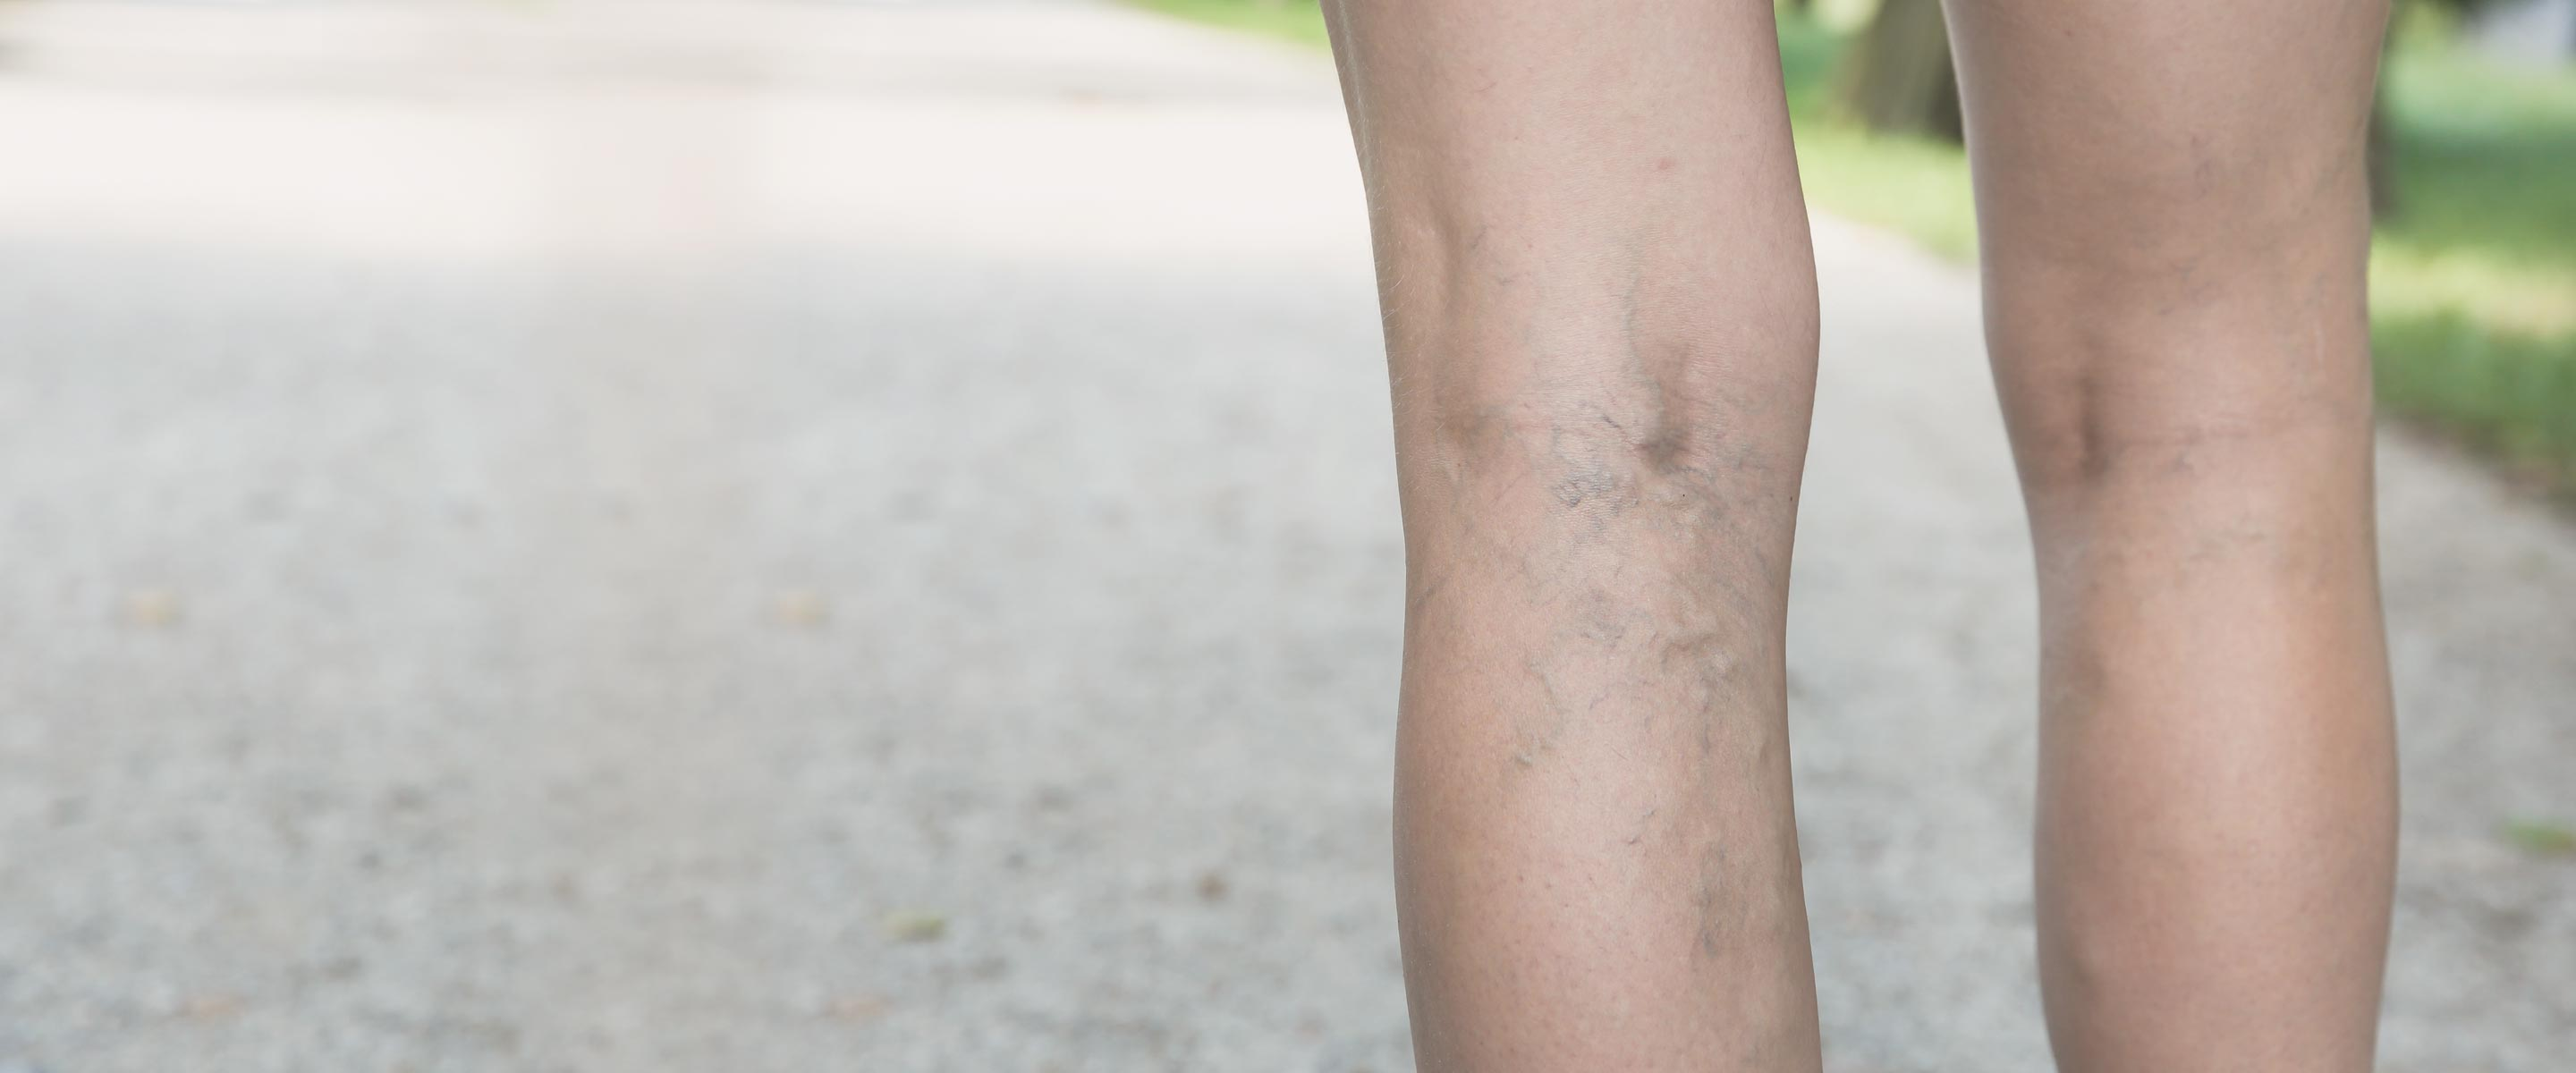 Which Varicose Vein Treatment is Best?